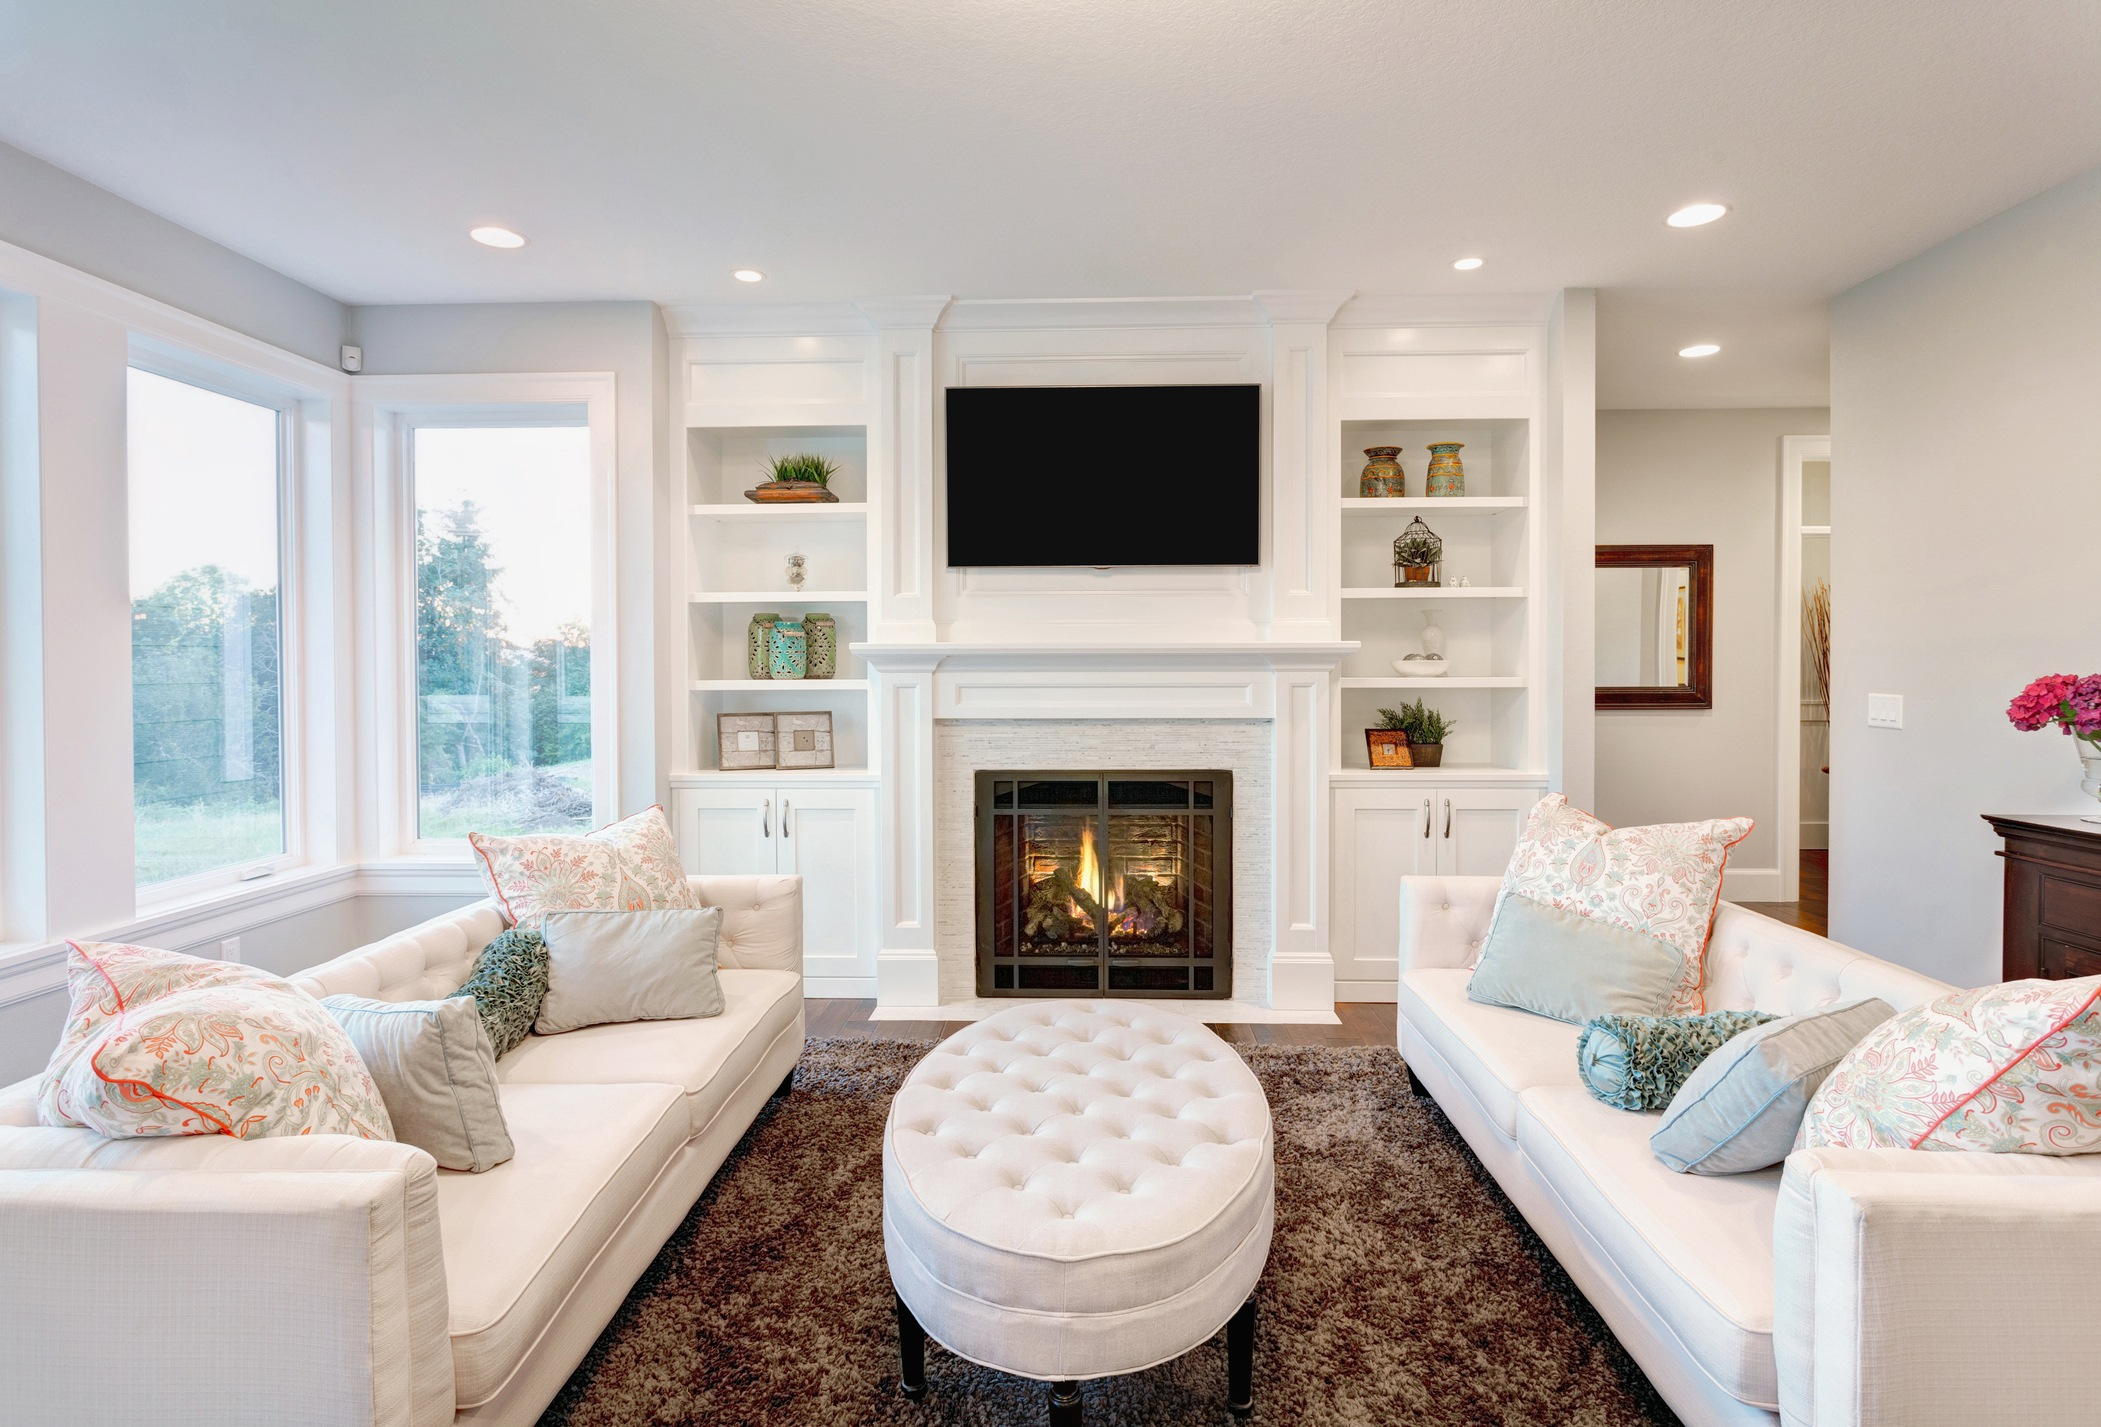 design room. furnished living room in newly constructed home This Popular Living Room Trend May Be Your Worst Design Mistake Ever